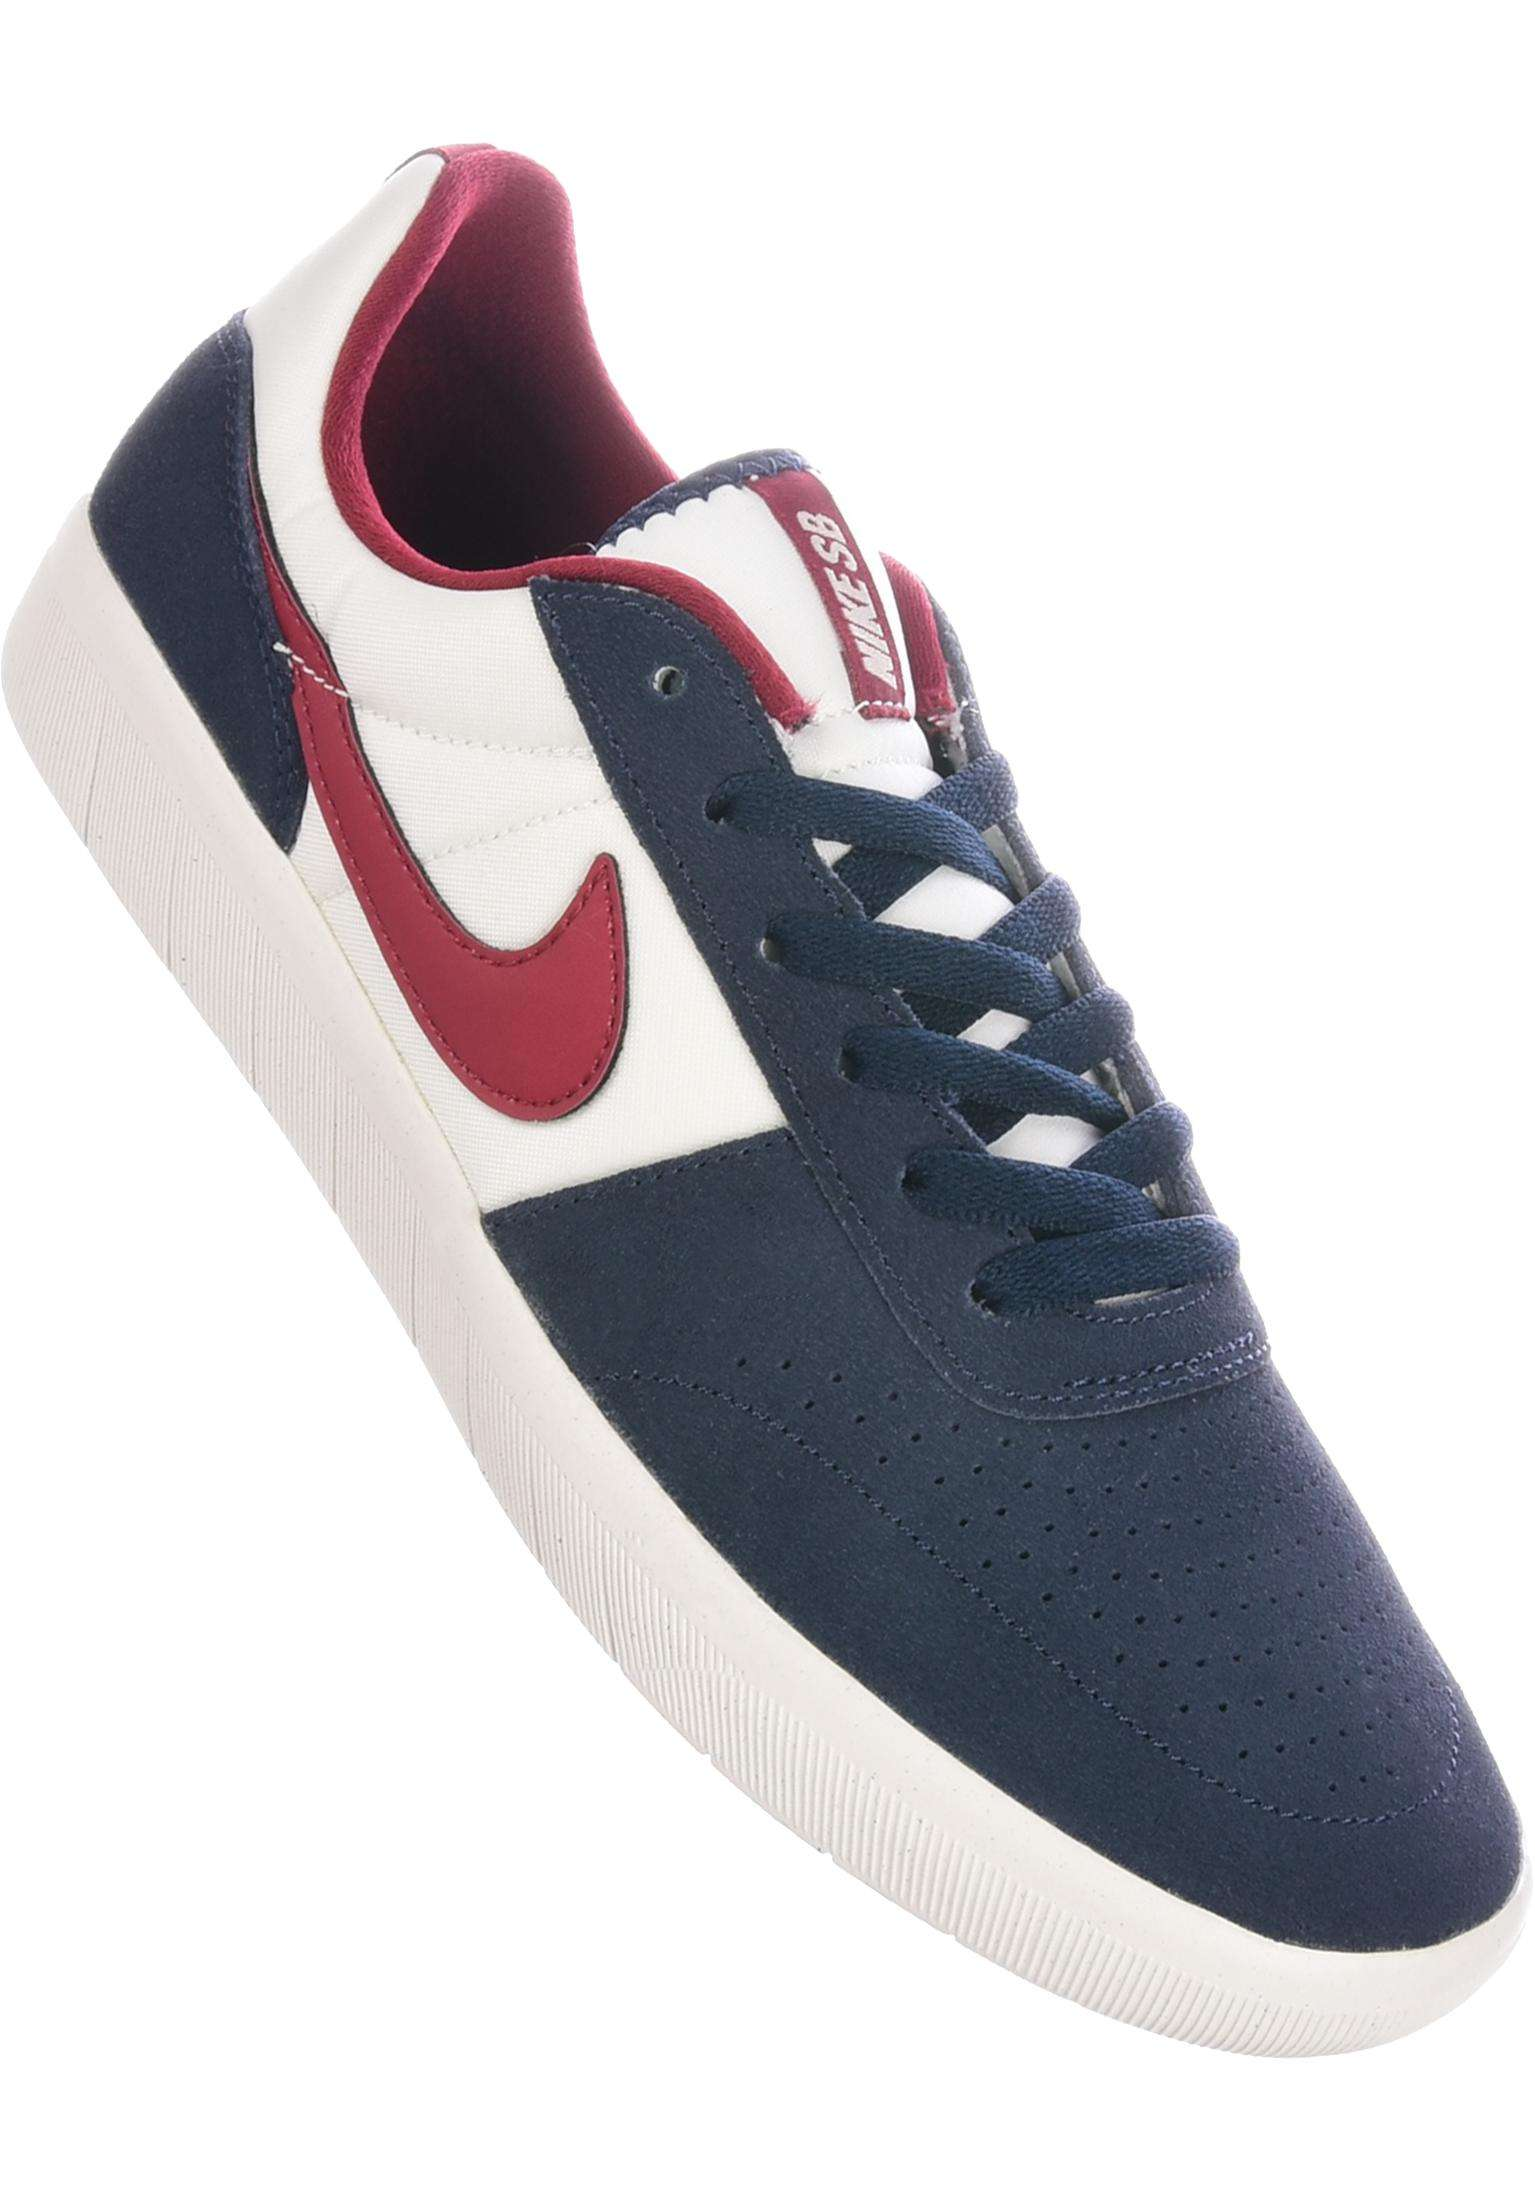 6ef76d9220 Team Classic Nike SB All Shoes in obsidian-red-summitwhite for Men   Titus